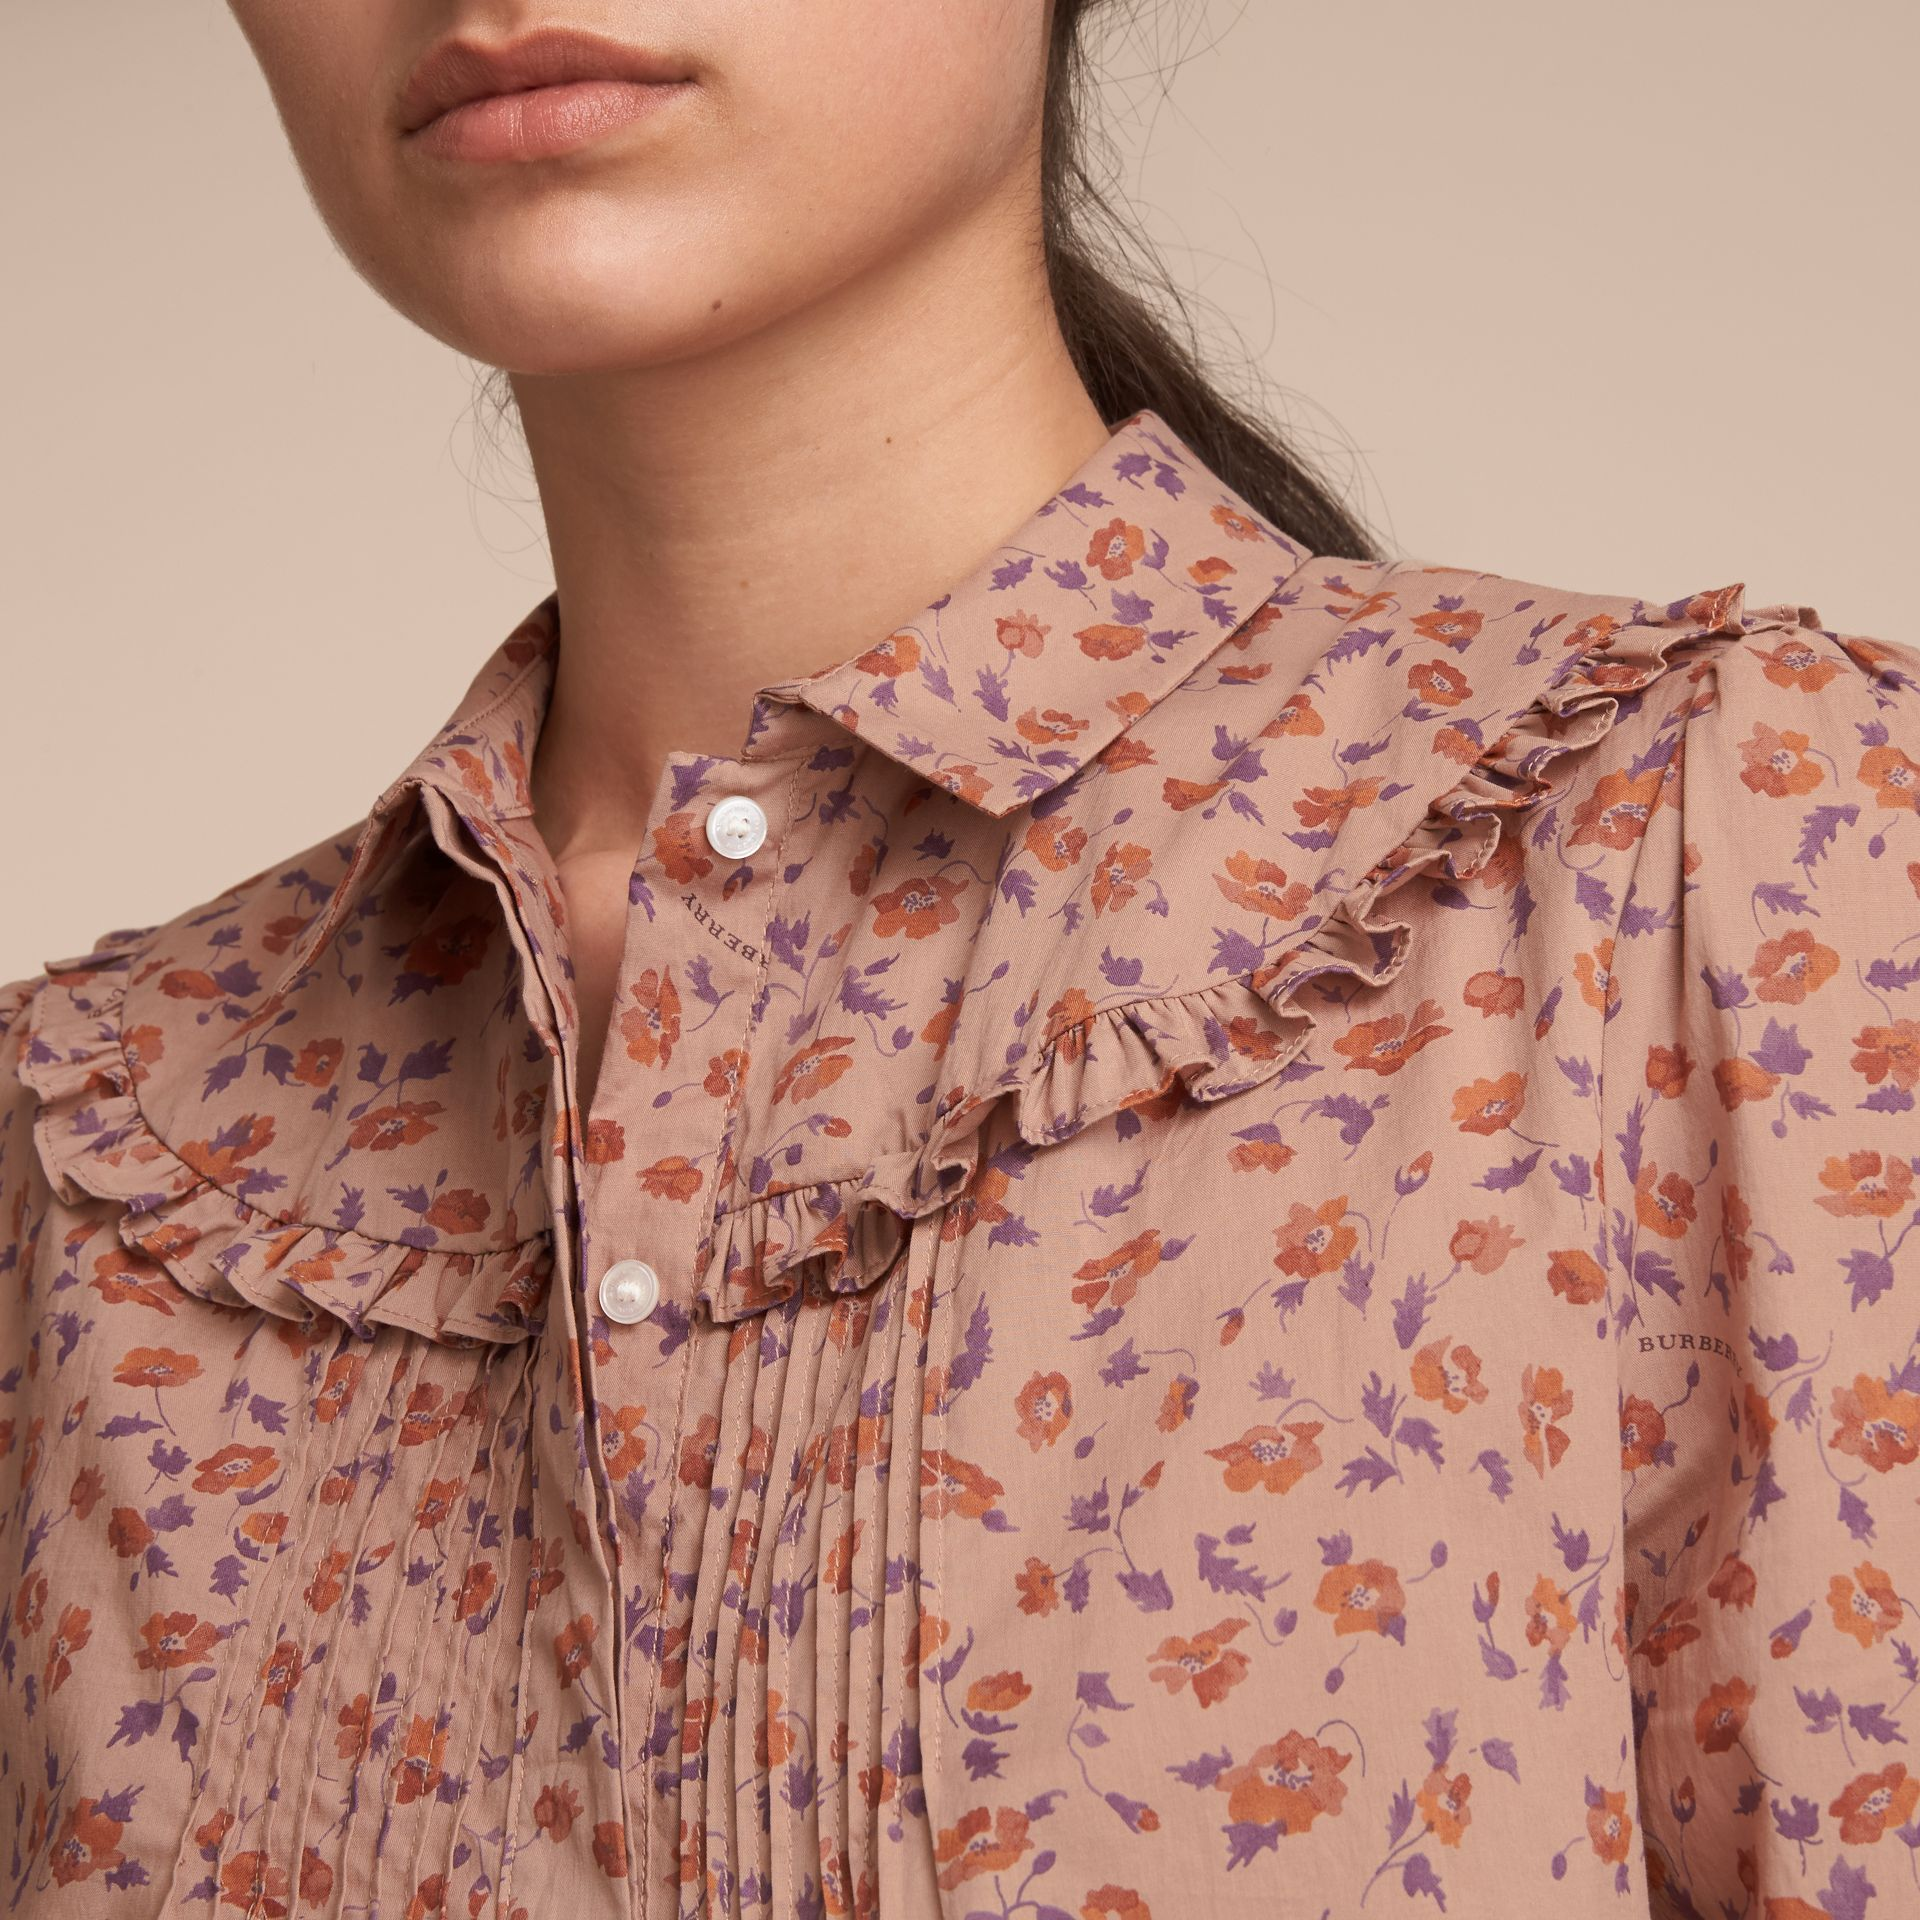 Ruffle Yoke Floral Print Cotton Shirt in Light Copper - Women | Burberry - gallery image 5